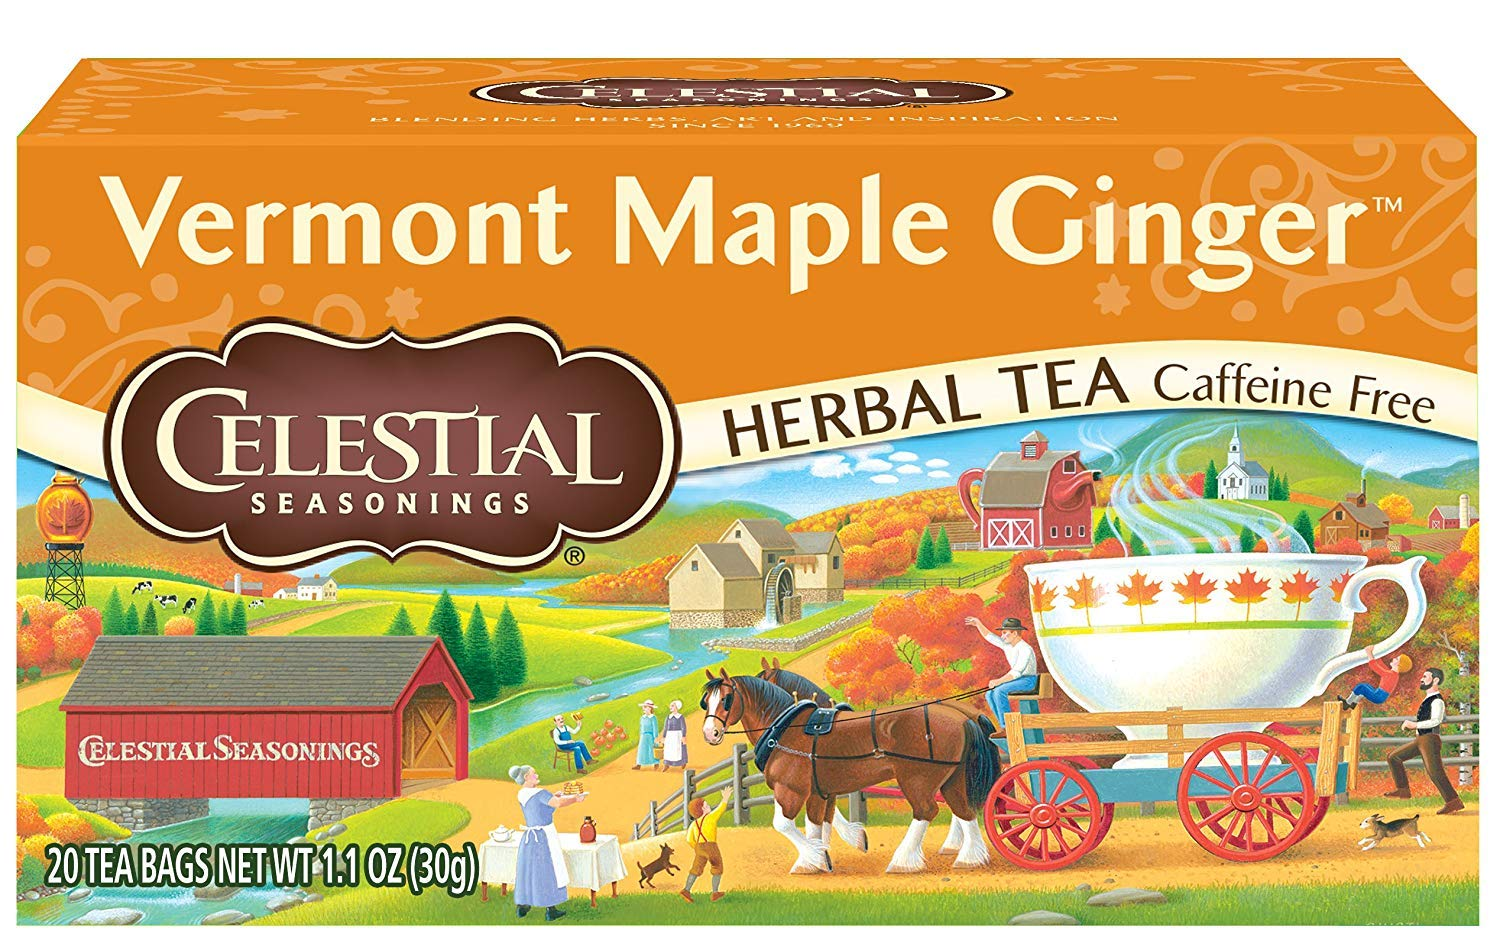 Celestial Seasonings Herbal Tea, Vermont Maple Ginger, 20 Count Box (Pack of 6)